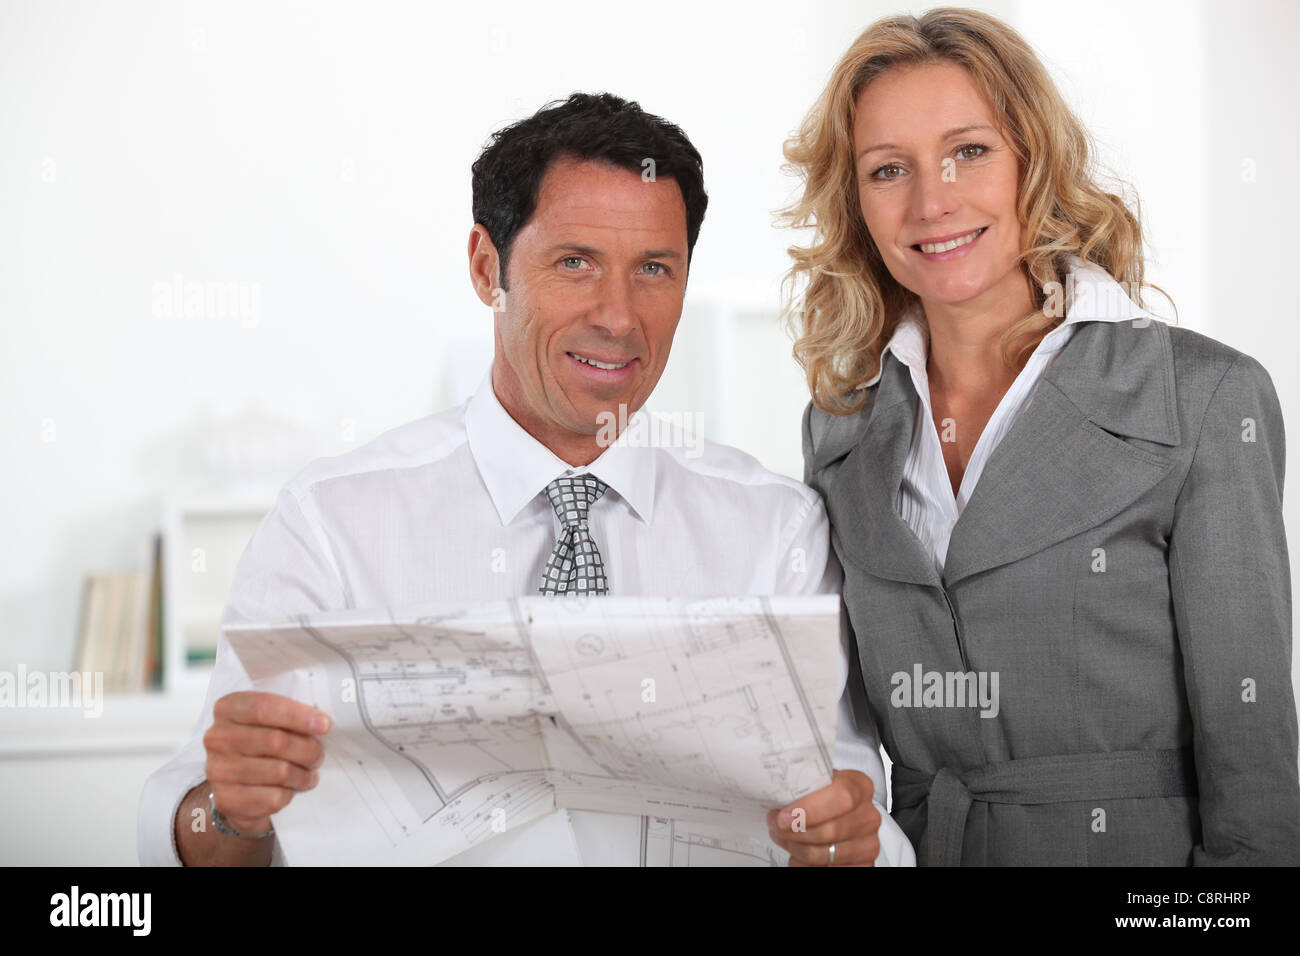 Real estate promoters - Stock Image